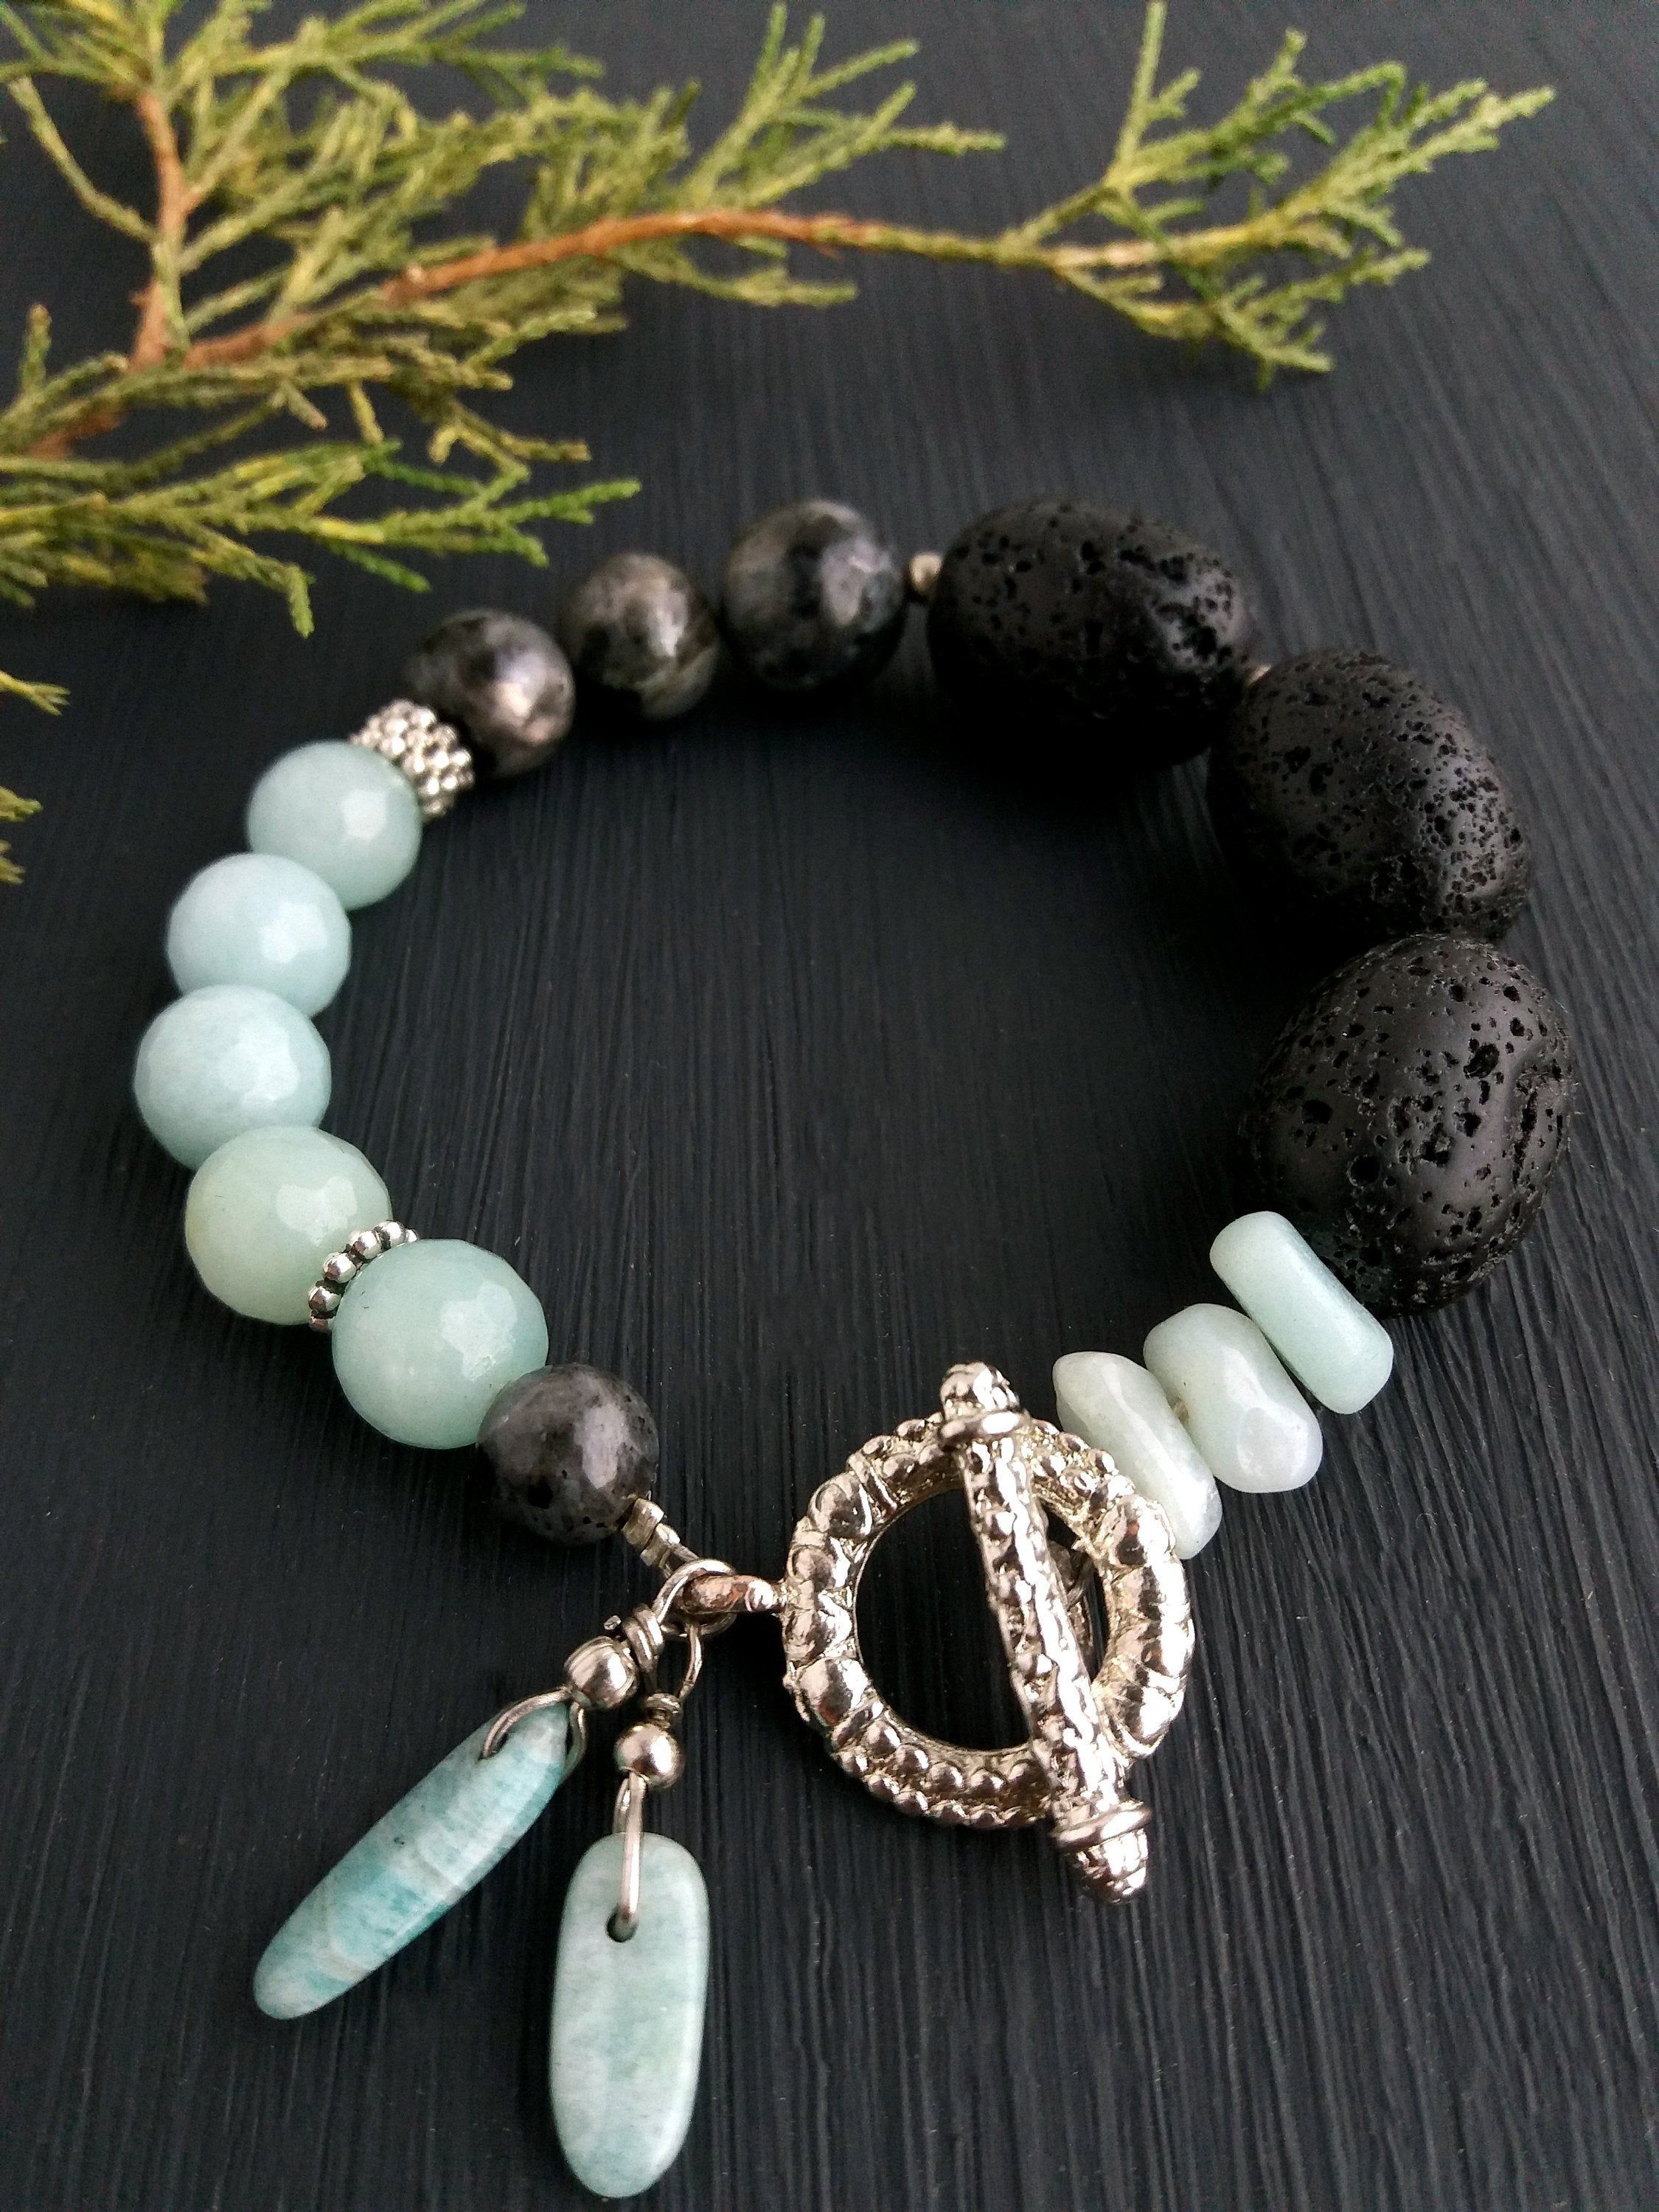 Photo of Lava stone Amazonite bracelet Healing stone jewelry Natural stone bracelets Gift for her Statement bracelet Gift idea Blue black bracelet